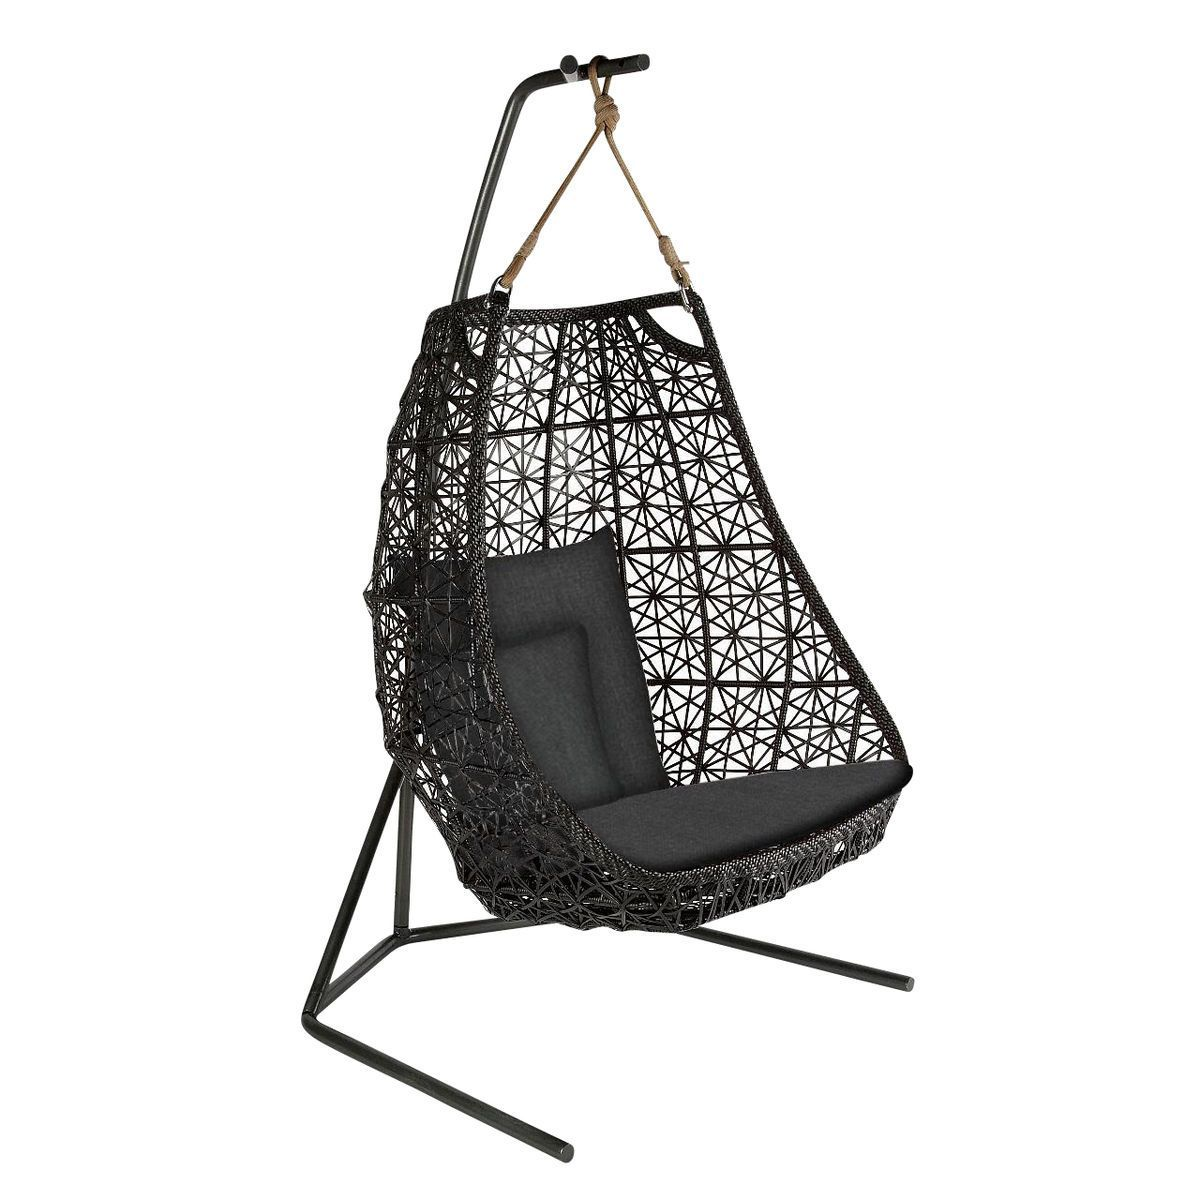 Maia Egg Swing Hanging Chair Kettal